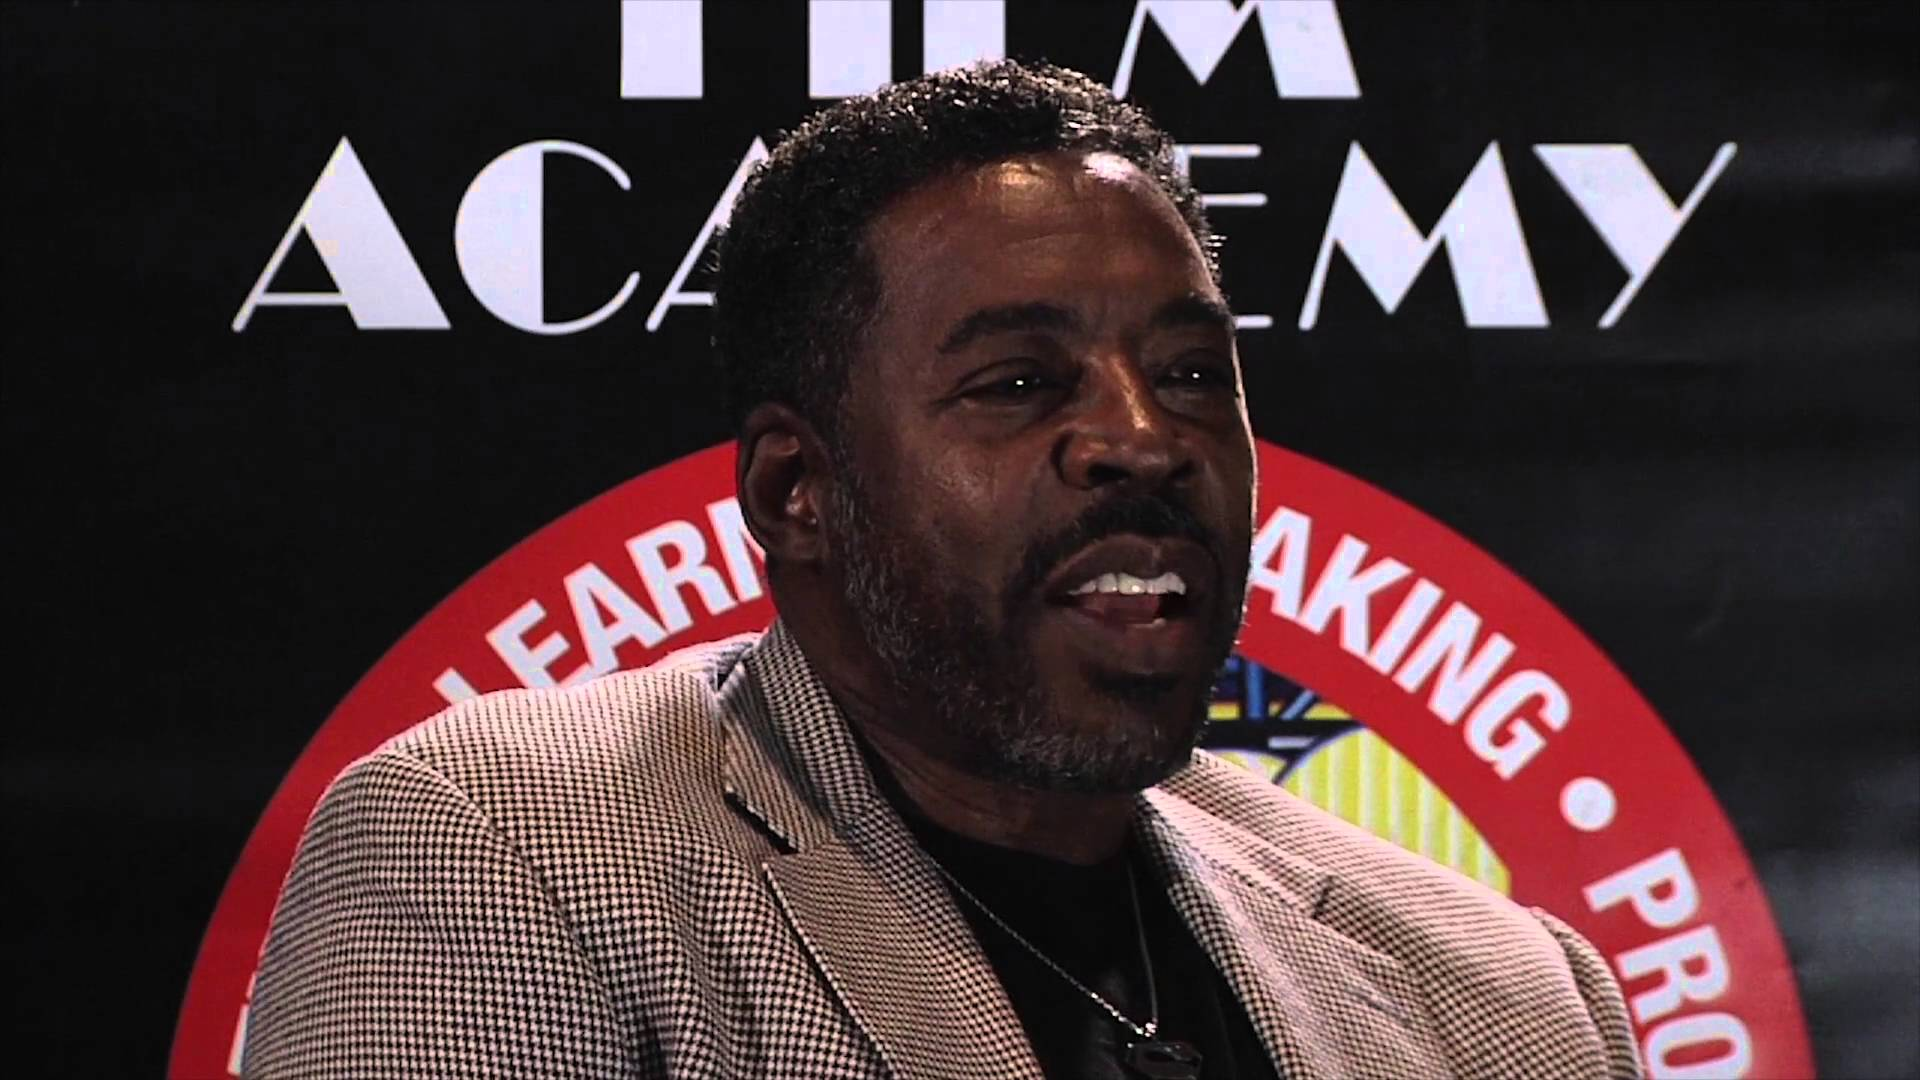 Discussion with Actor Ernie Hudson at New York Film Academy